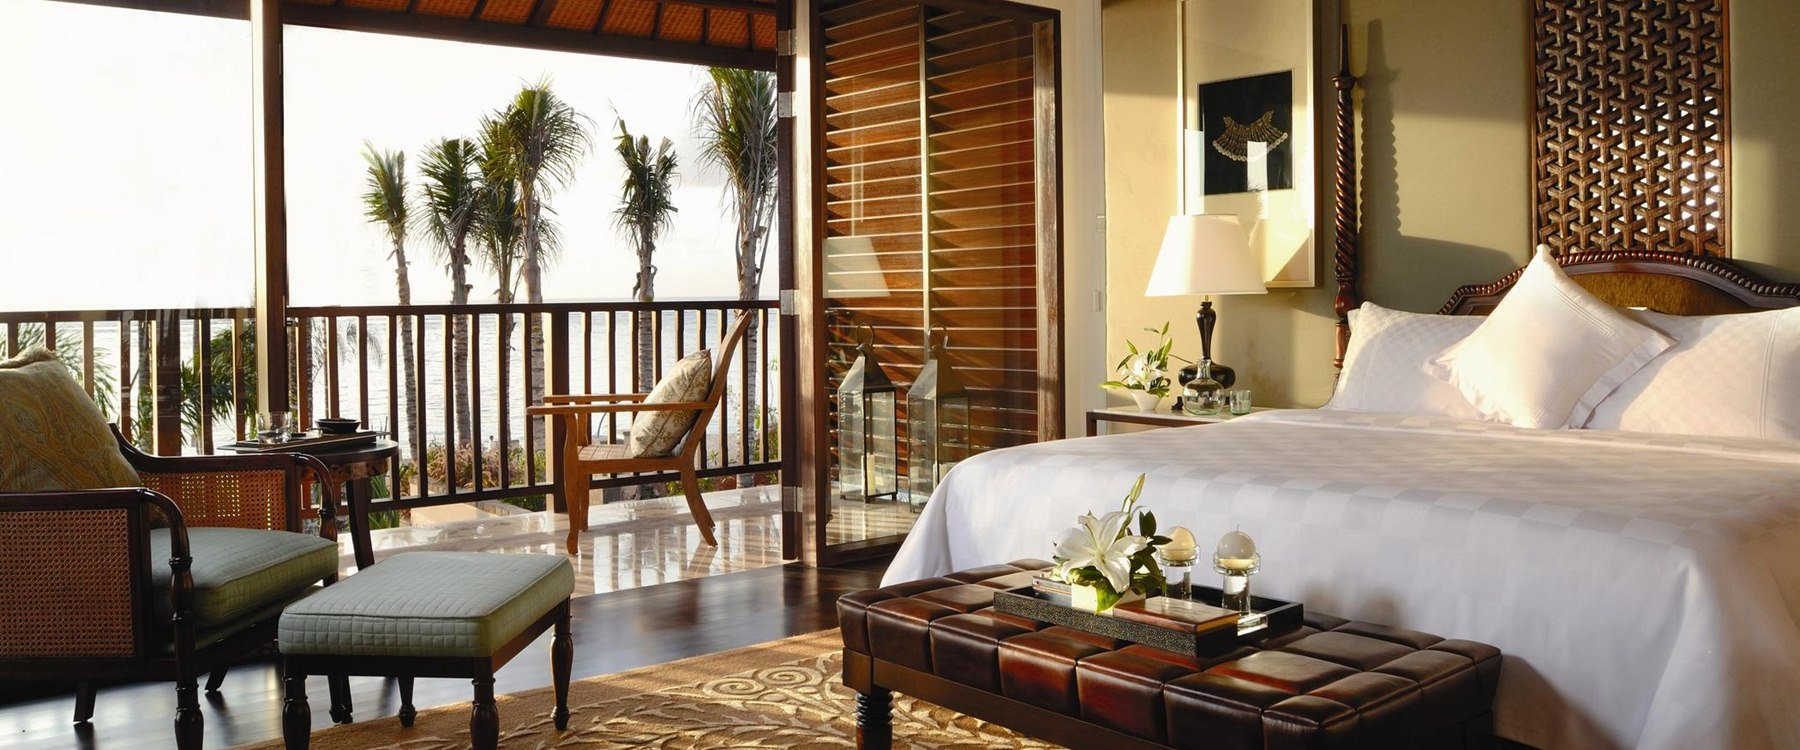 bedroom at The St Regis Bali Resort